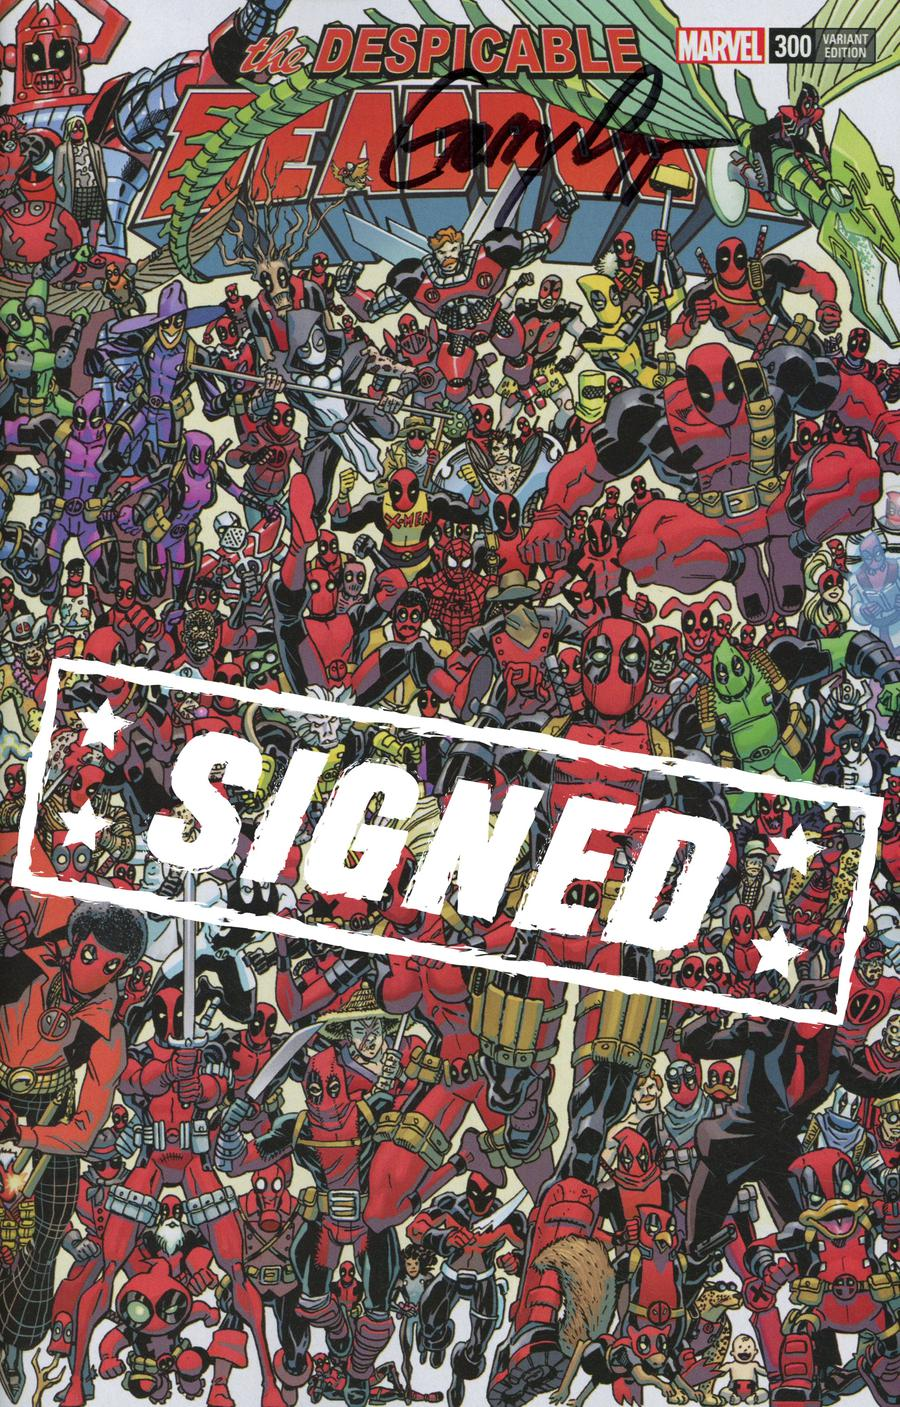 Despicable Deadpool #300 Cover H Variant Scott Koblish 300 Deadpools Wraparound Cover Signed By Gerry Duggan